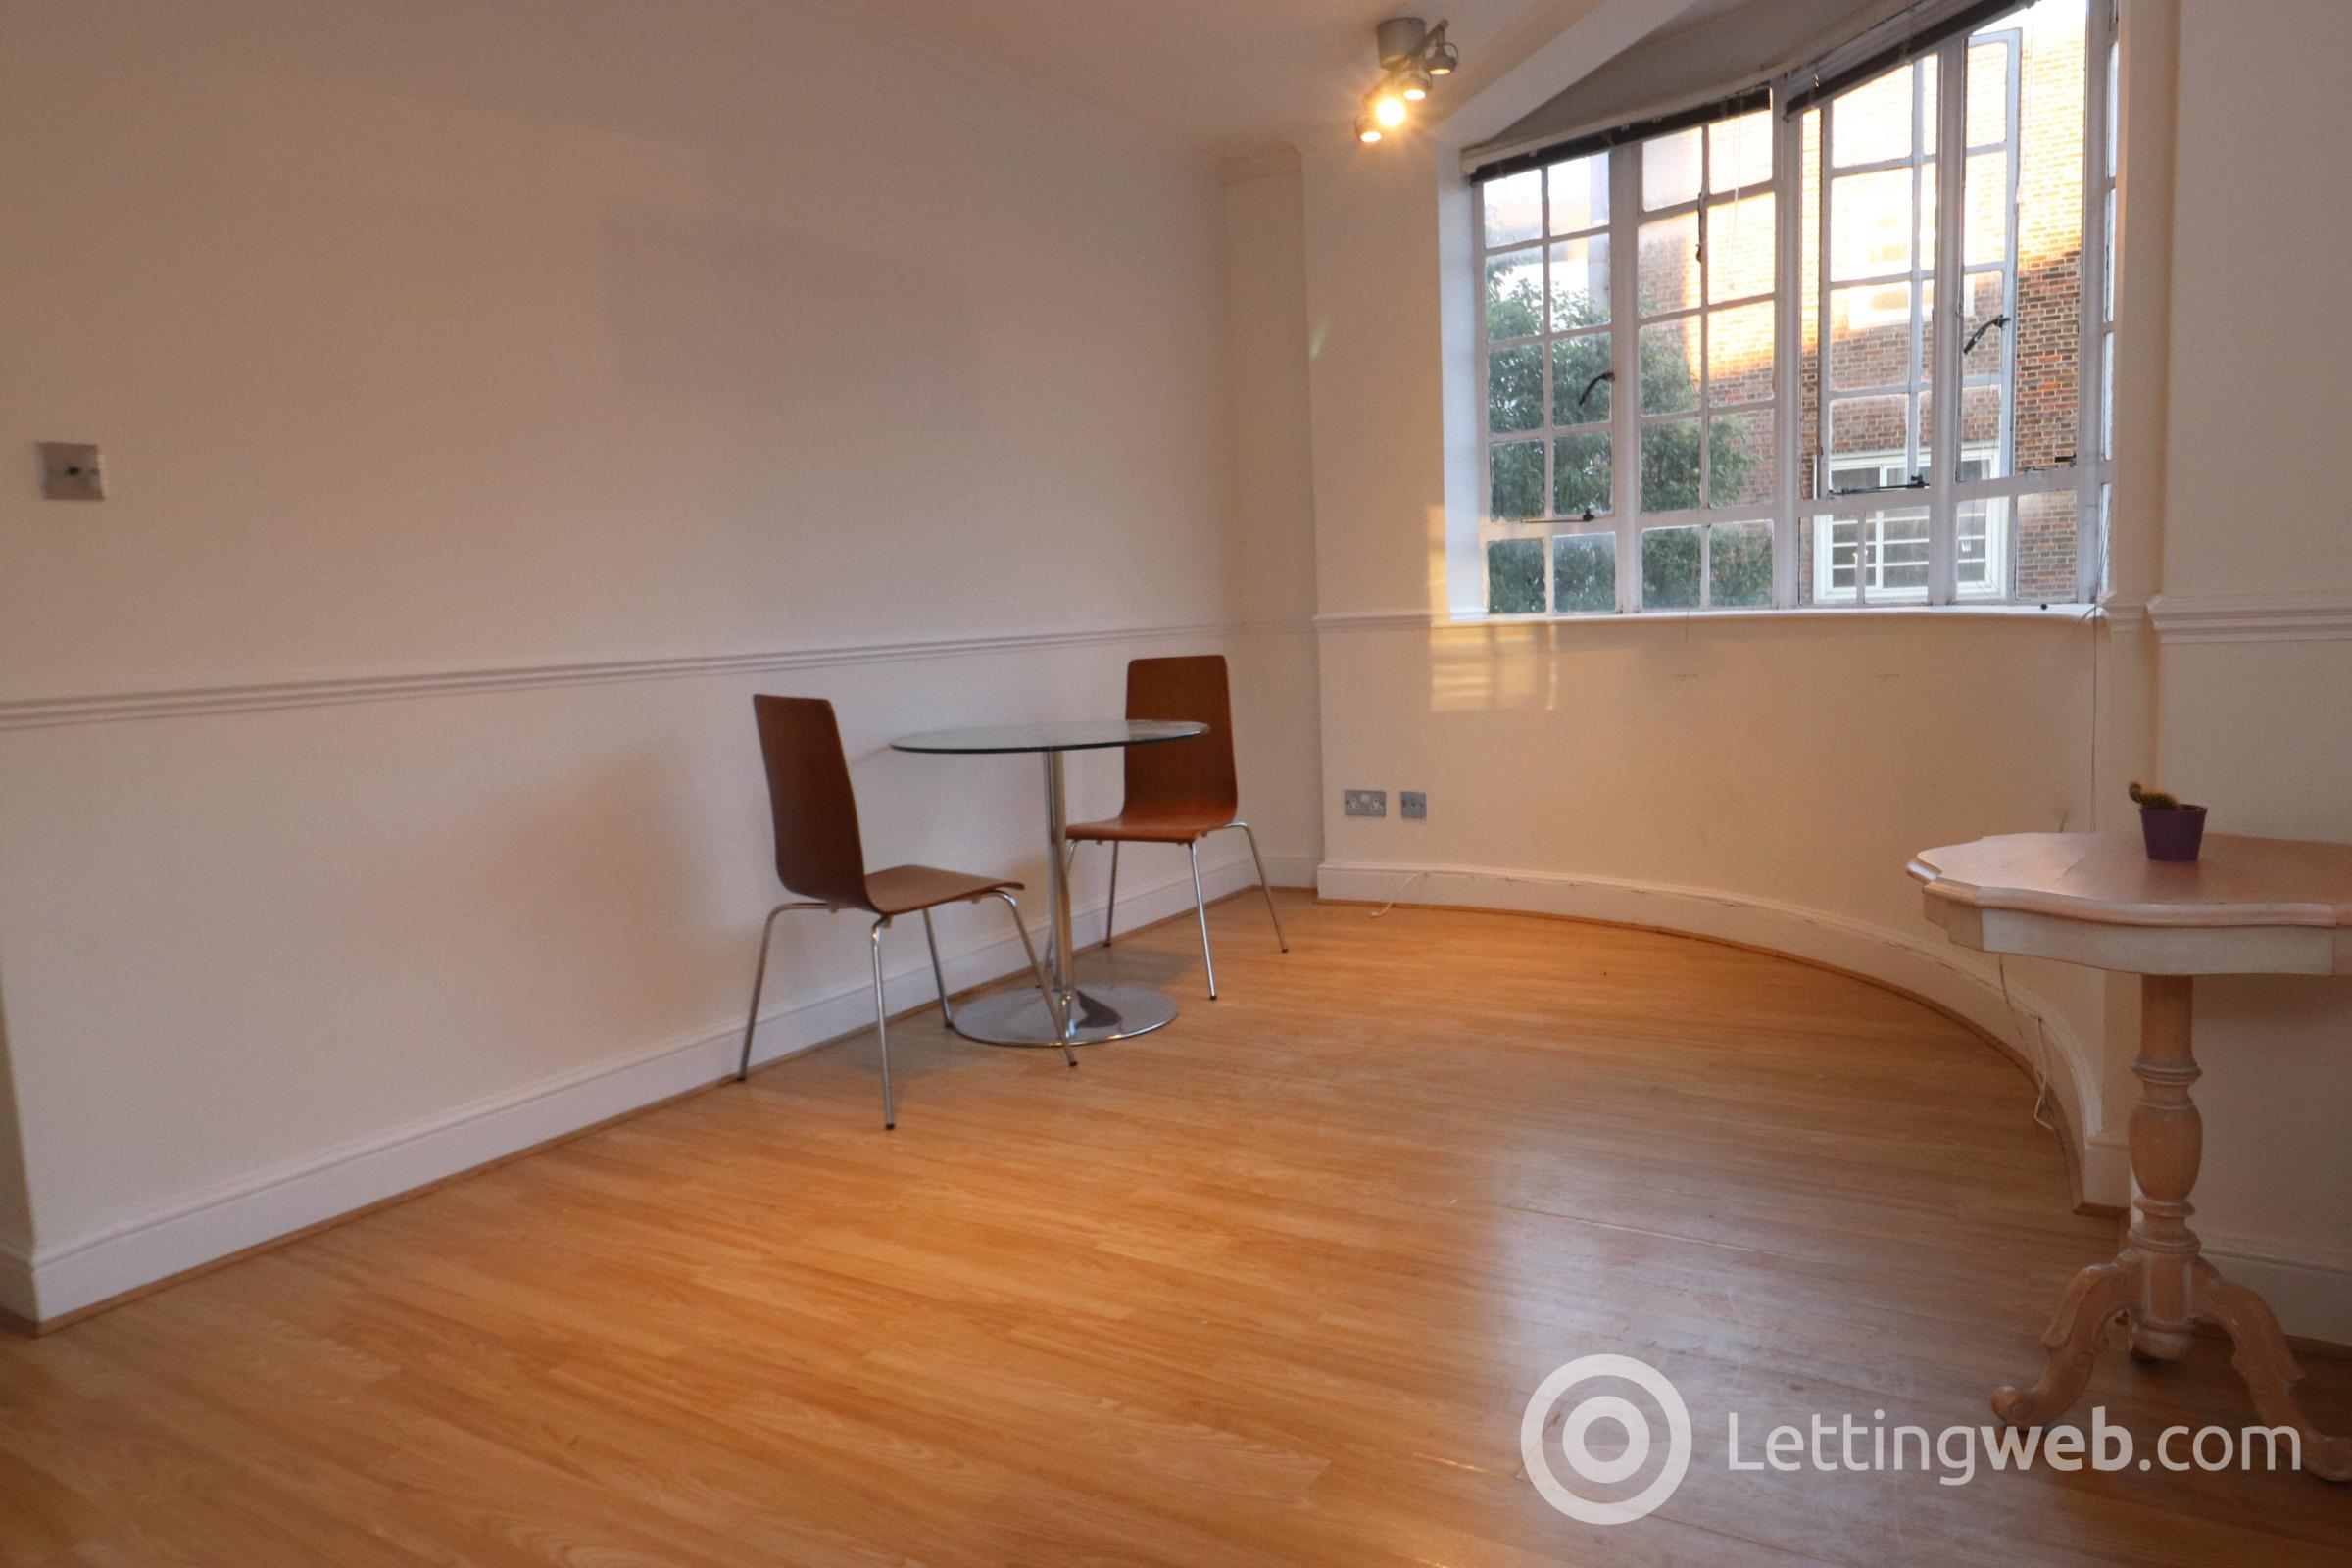 Property to rent in Chelsea Cloisters, Sloane Avenue, London SW3 3EE